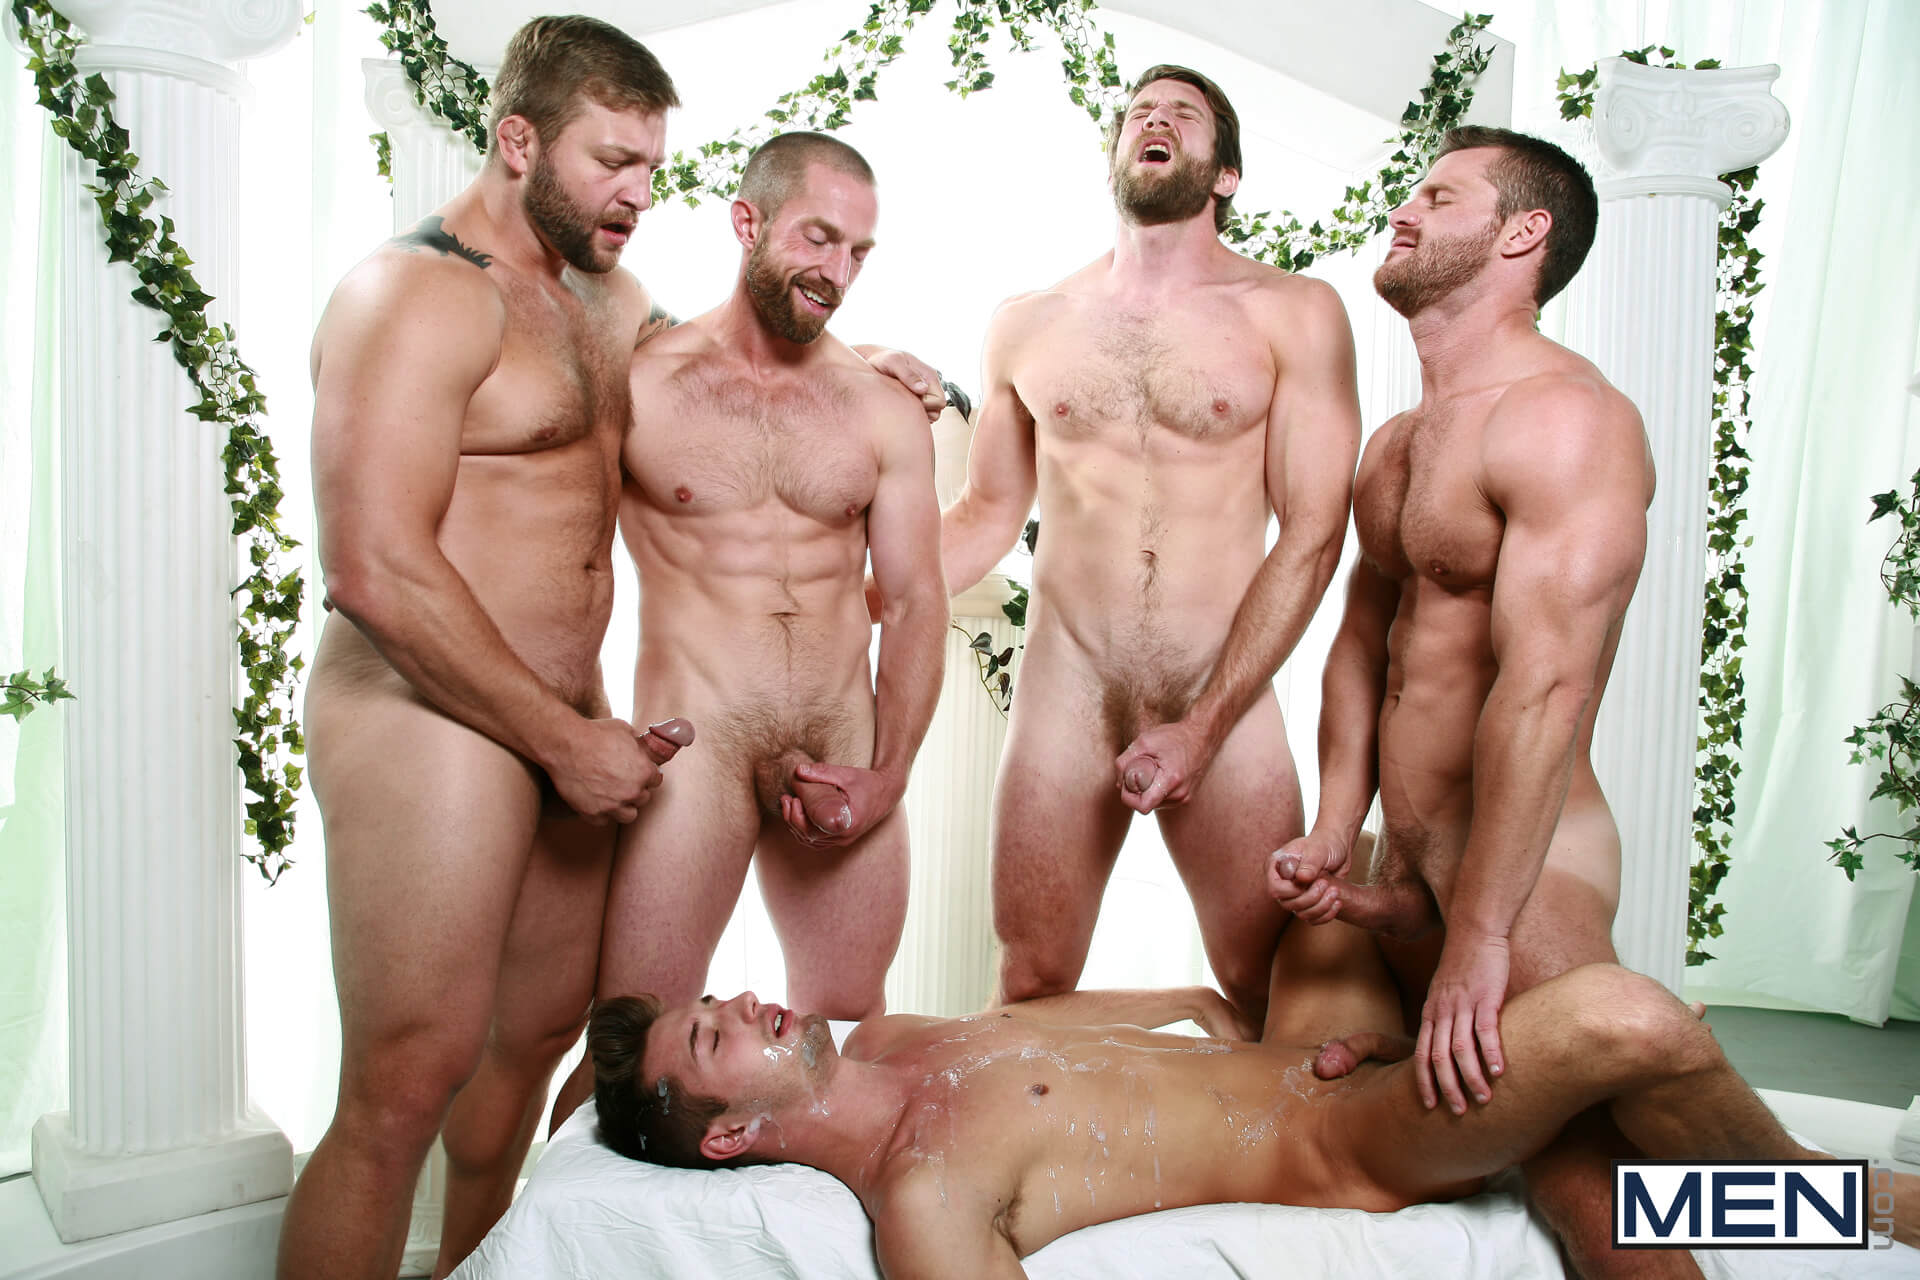 men super gay hero sex traveler part 3 adam herst colby jansen colby keller jd phoenix landon conrad gay porn blog image 12